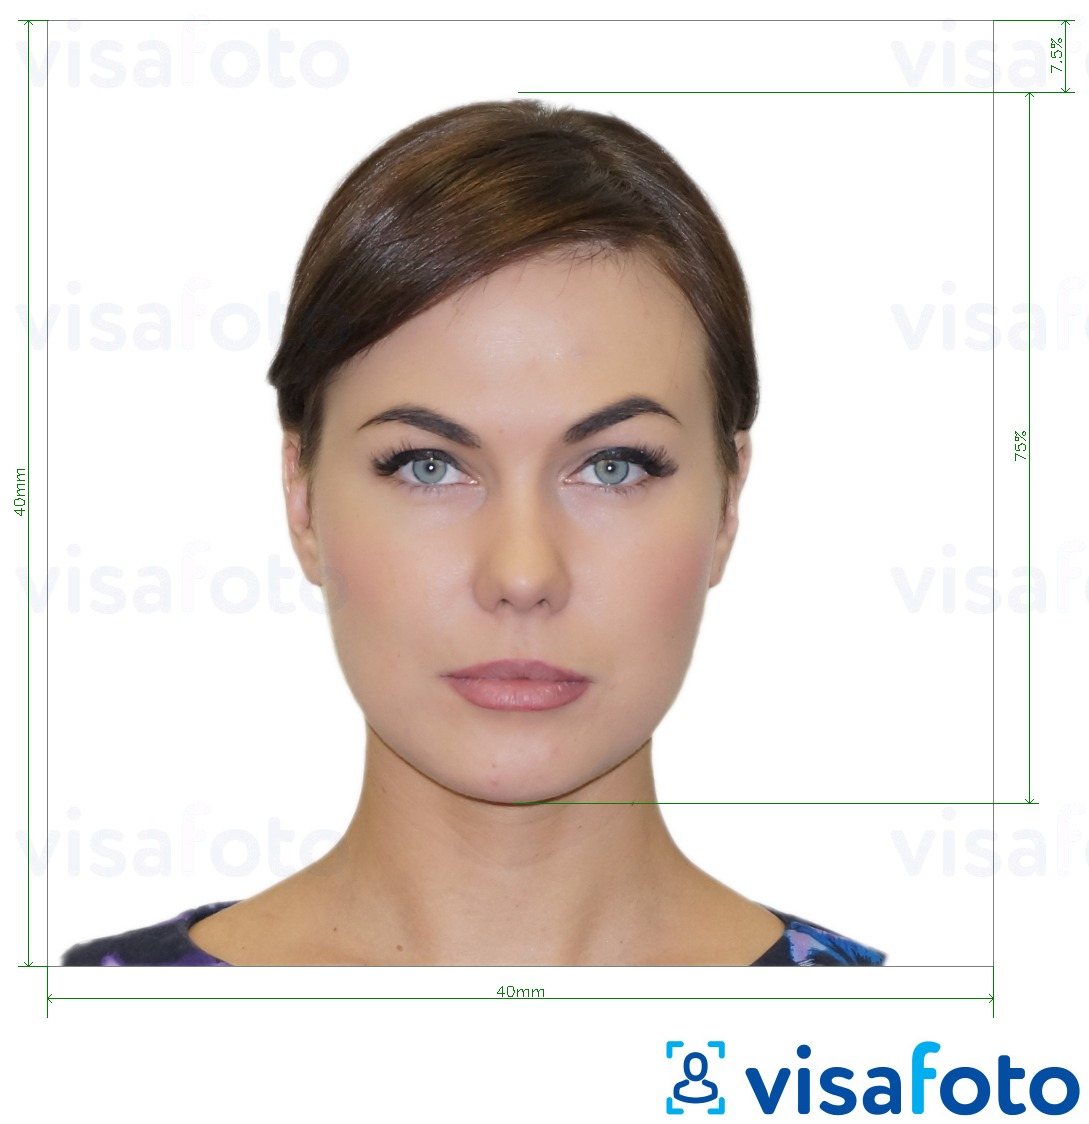 Example of photo for Italy Passport 40x40 mm (LA consulate) with exact size specification